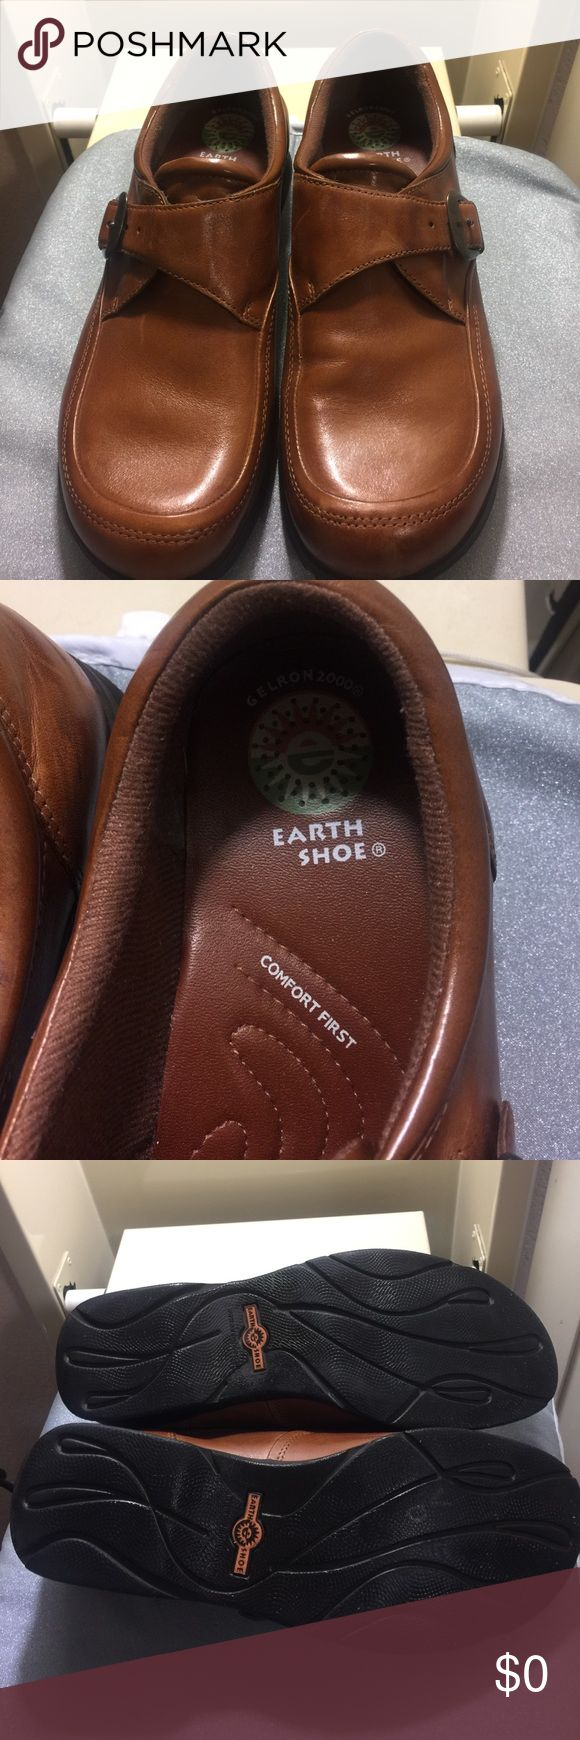 Brown Earth Shoe In great condition! Brown Earth shoe. Gelron 2000. Rubber sole with brown brass buckle. Please see pics for condition. Earth Shoe Shoes